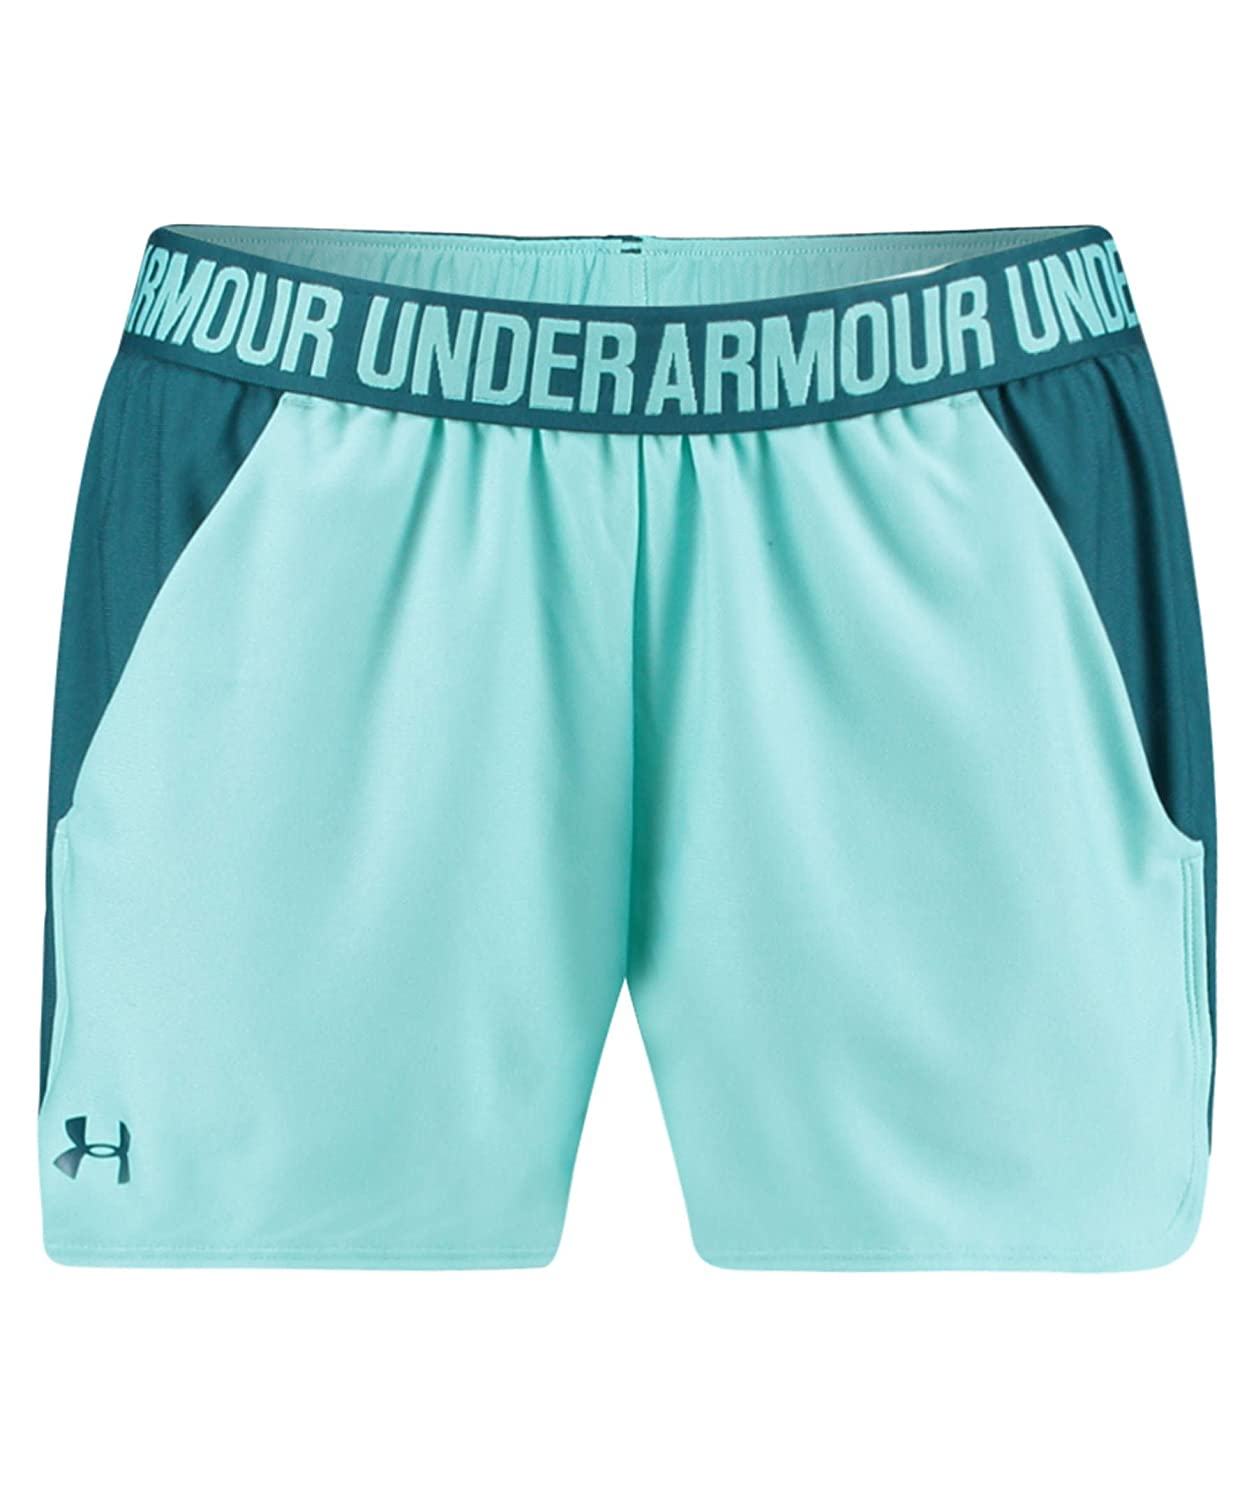 (アンダーアーマー) UNDER ARMOUR プレイアップショーツ(トレーニング/ショートパンツ/WOMEN)[1292231] B071HPSBGH 3S|Tropical Tide/Tourmaline Teal Tropical Tide/Tourmaline Teal 3S